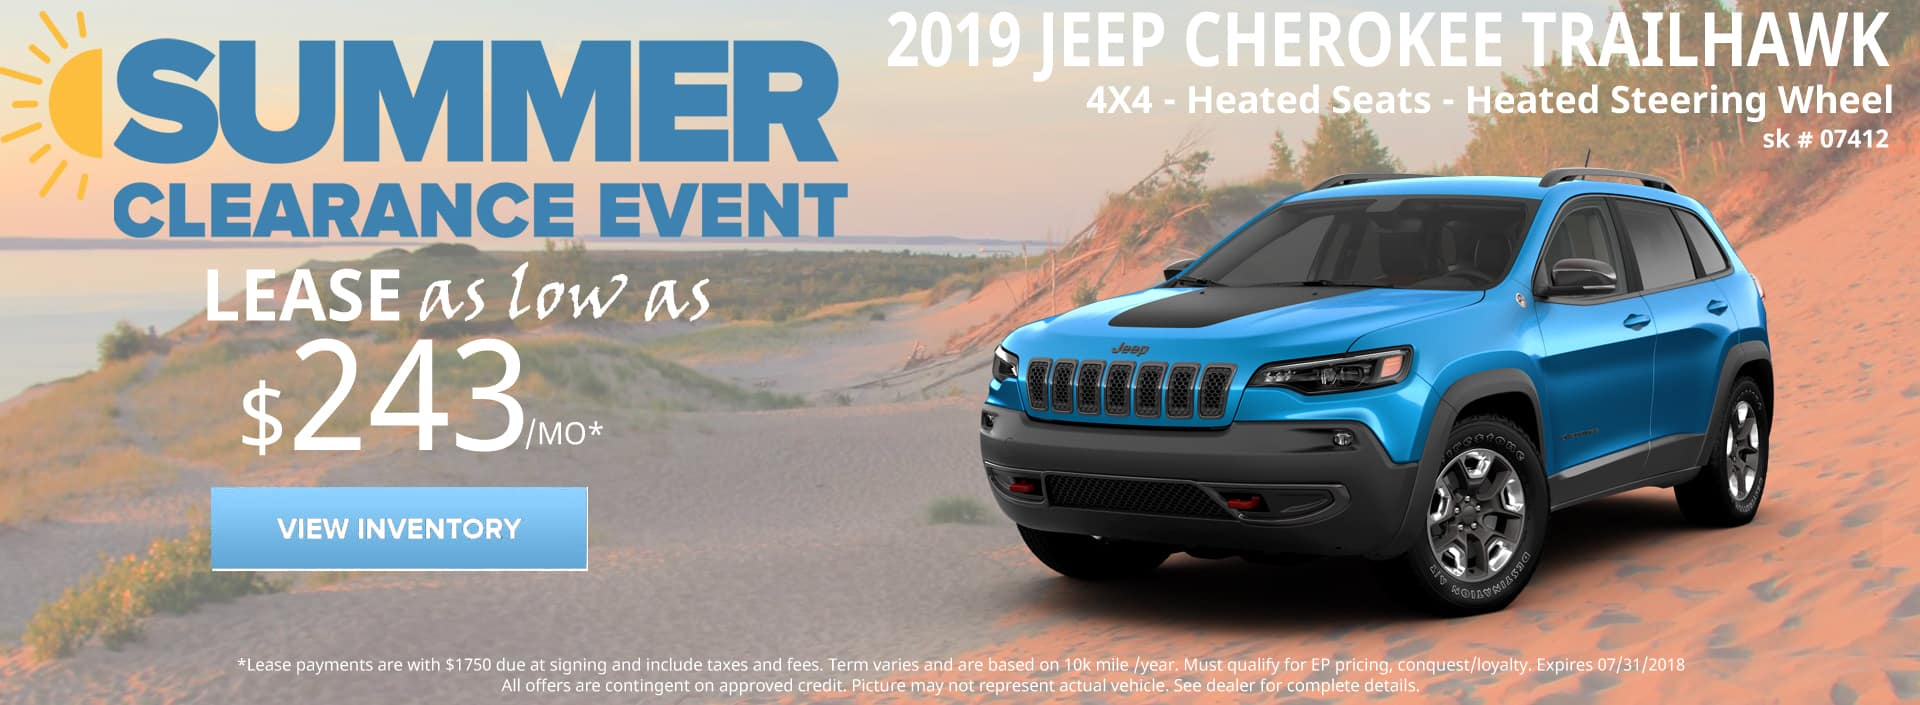 July 2018 Special 2019 Jeep Cherokee Trailhawk